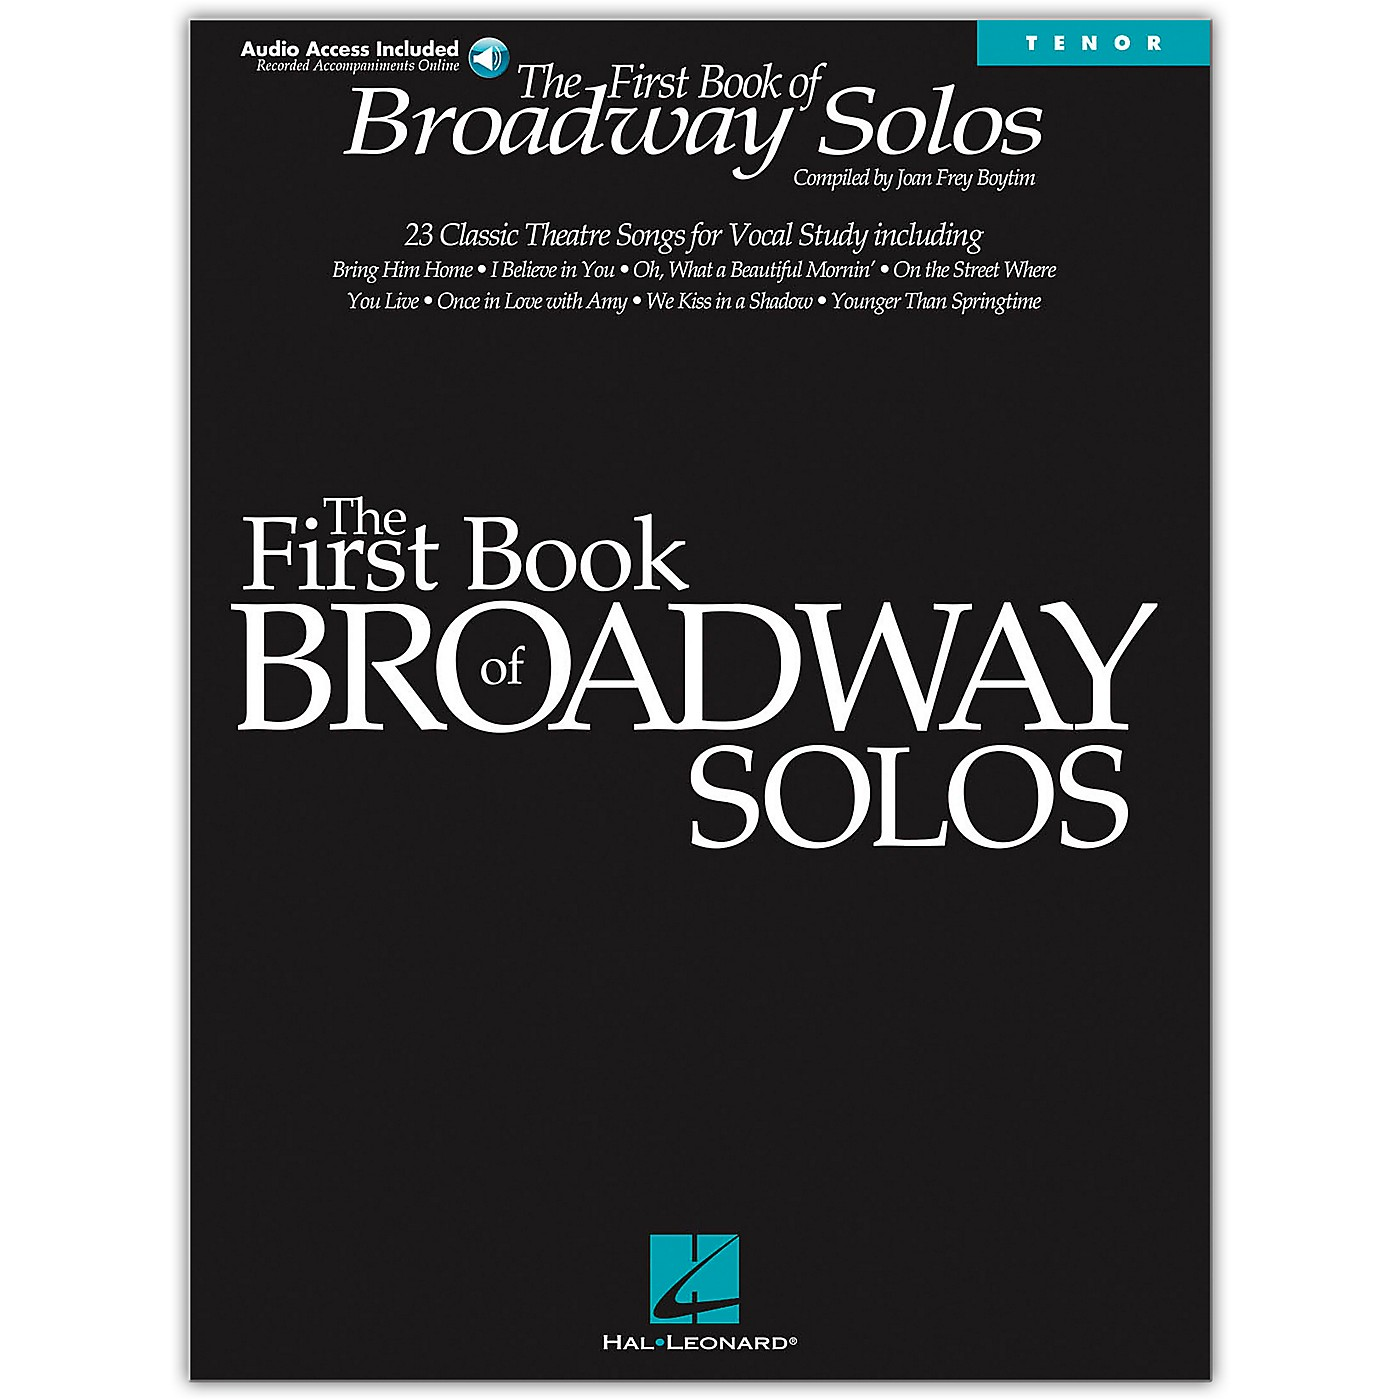 Hal Leonard First Book Of Broadway Solos for Tenor Voice (Book/Online Audio) thumbnail